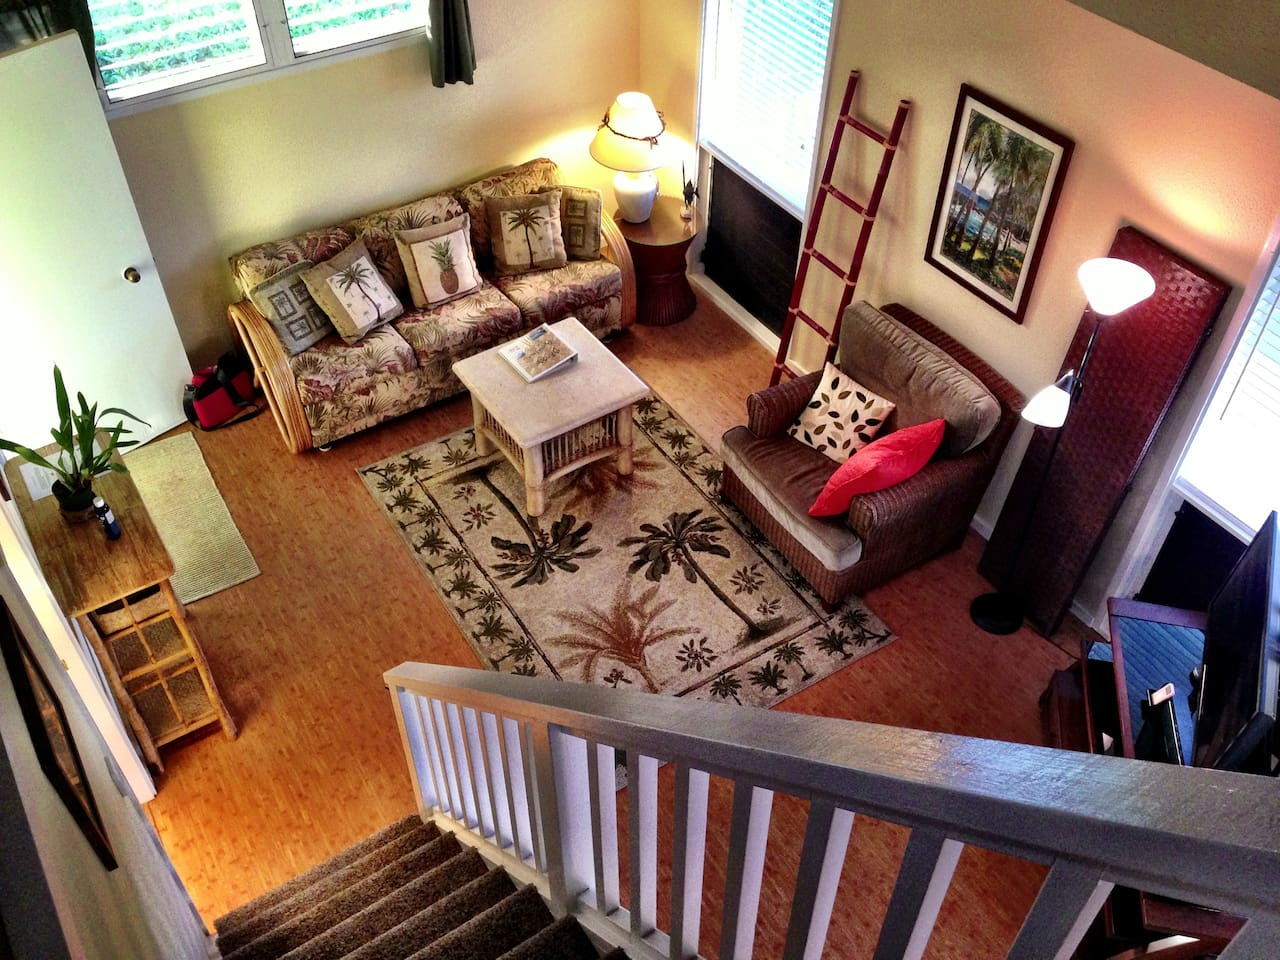 The New Bamboo Bungalow! Comfortable, newly remodeled living space.